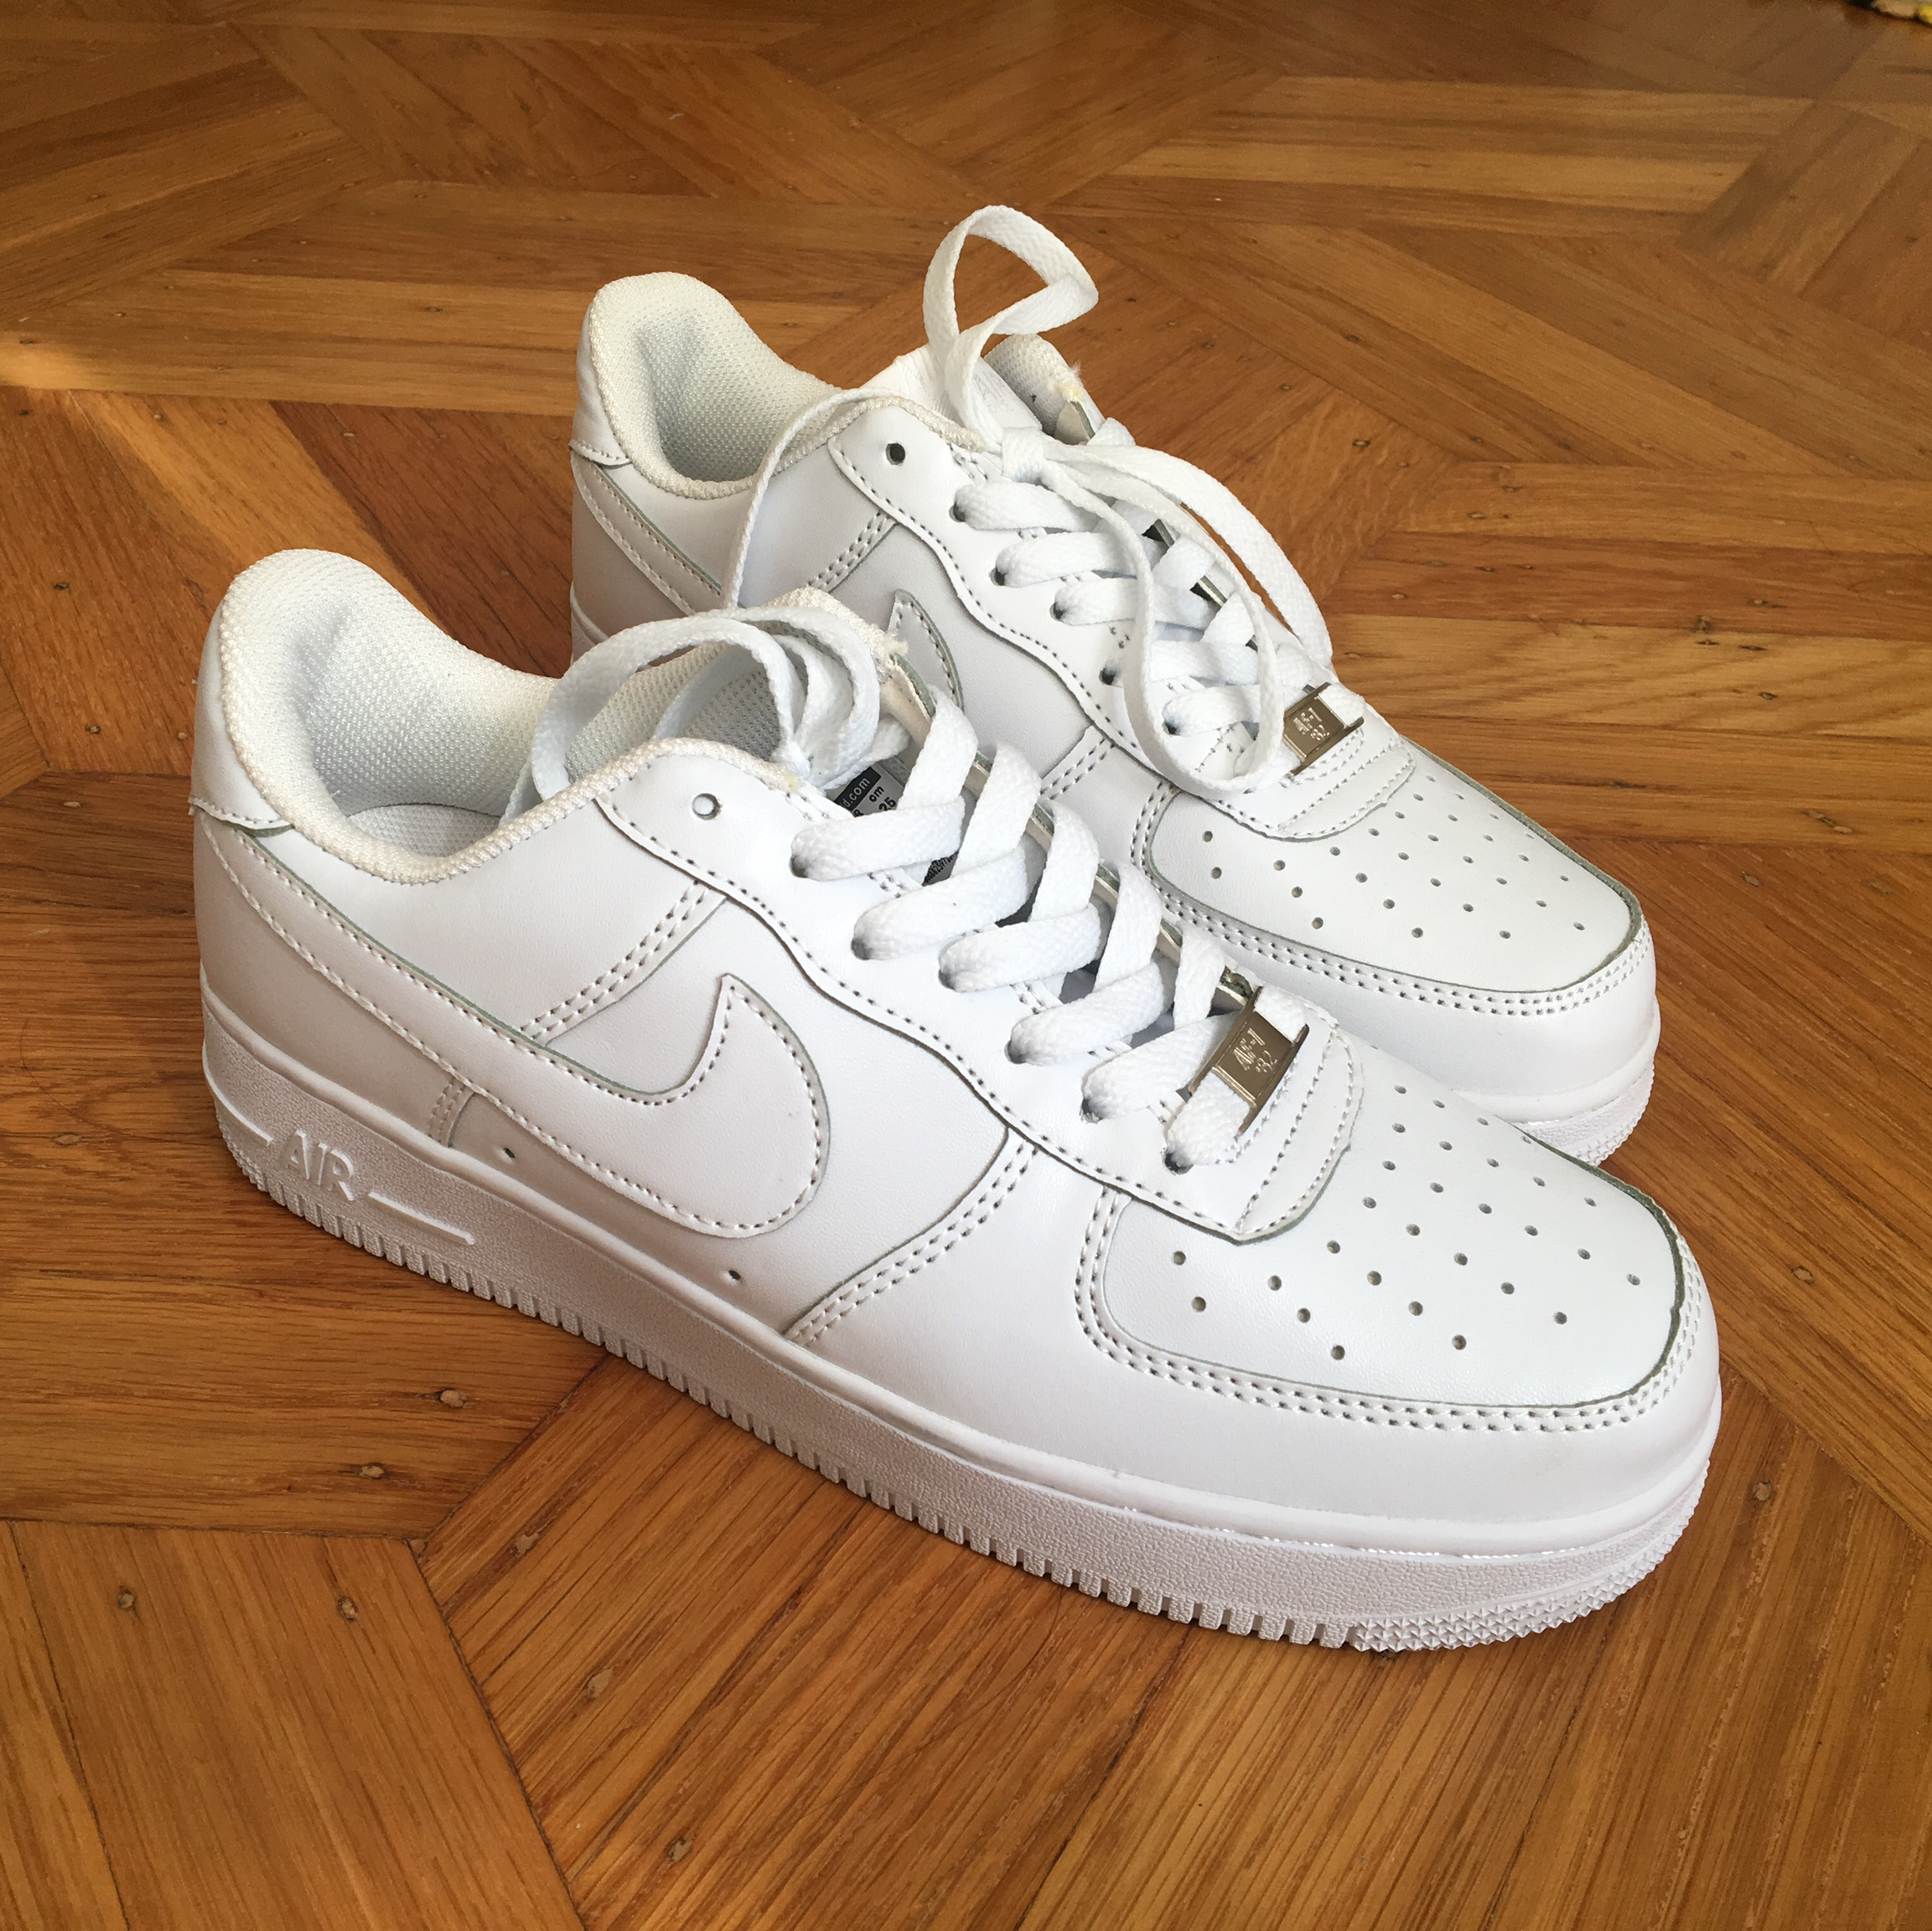 new style 68fdd 3354a nike low top air force ones '82. selling these for... - Depop